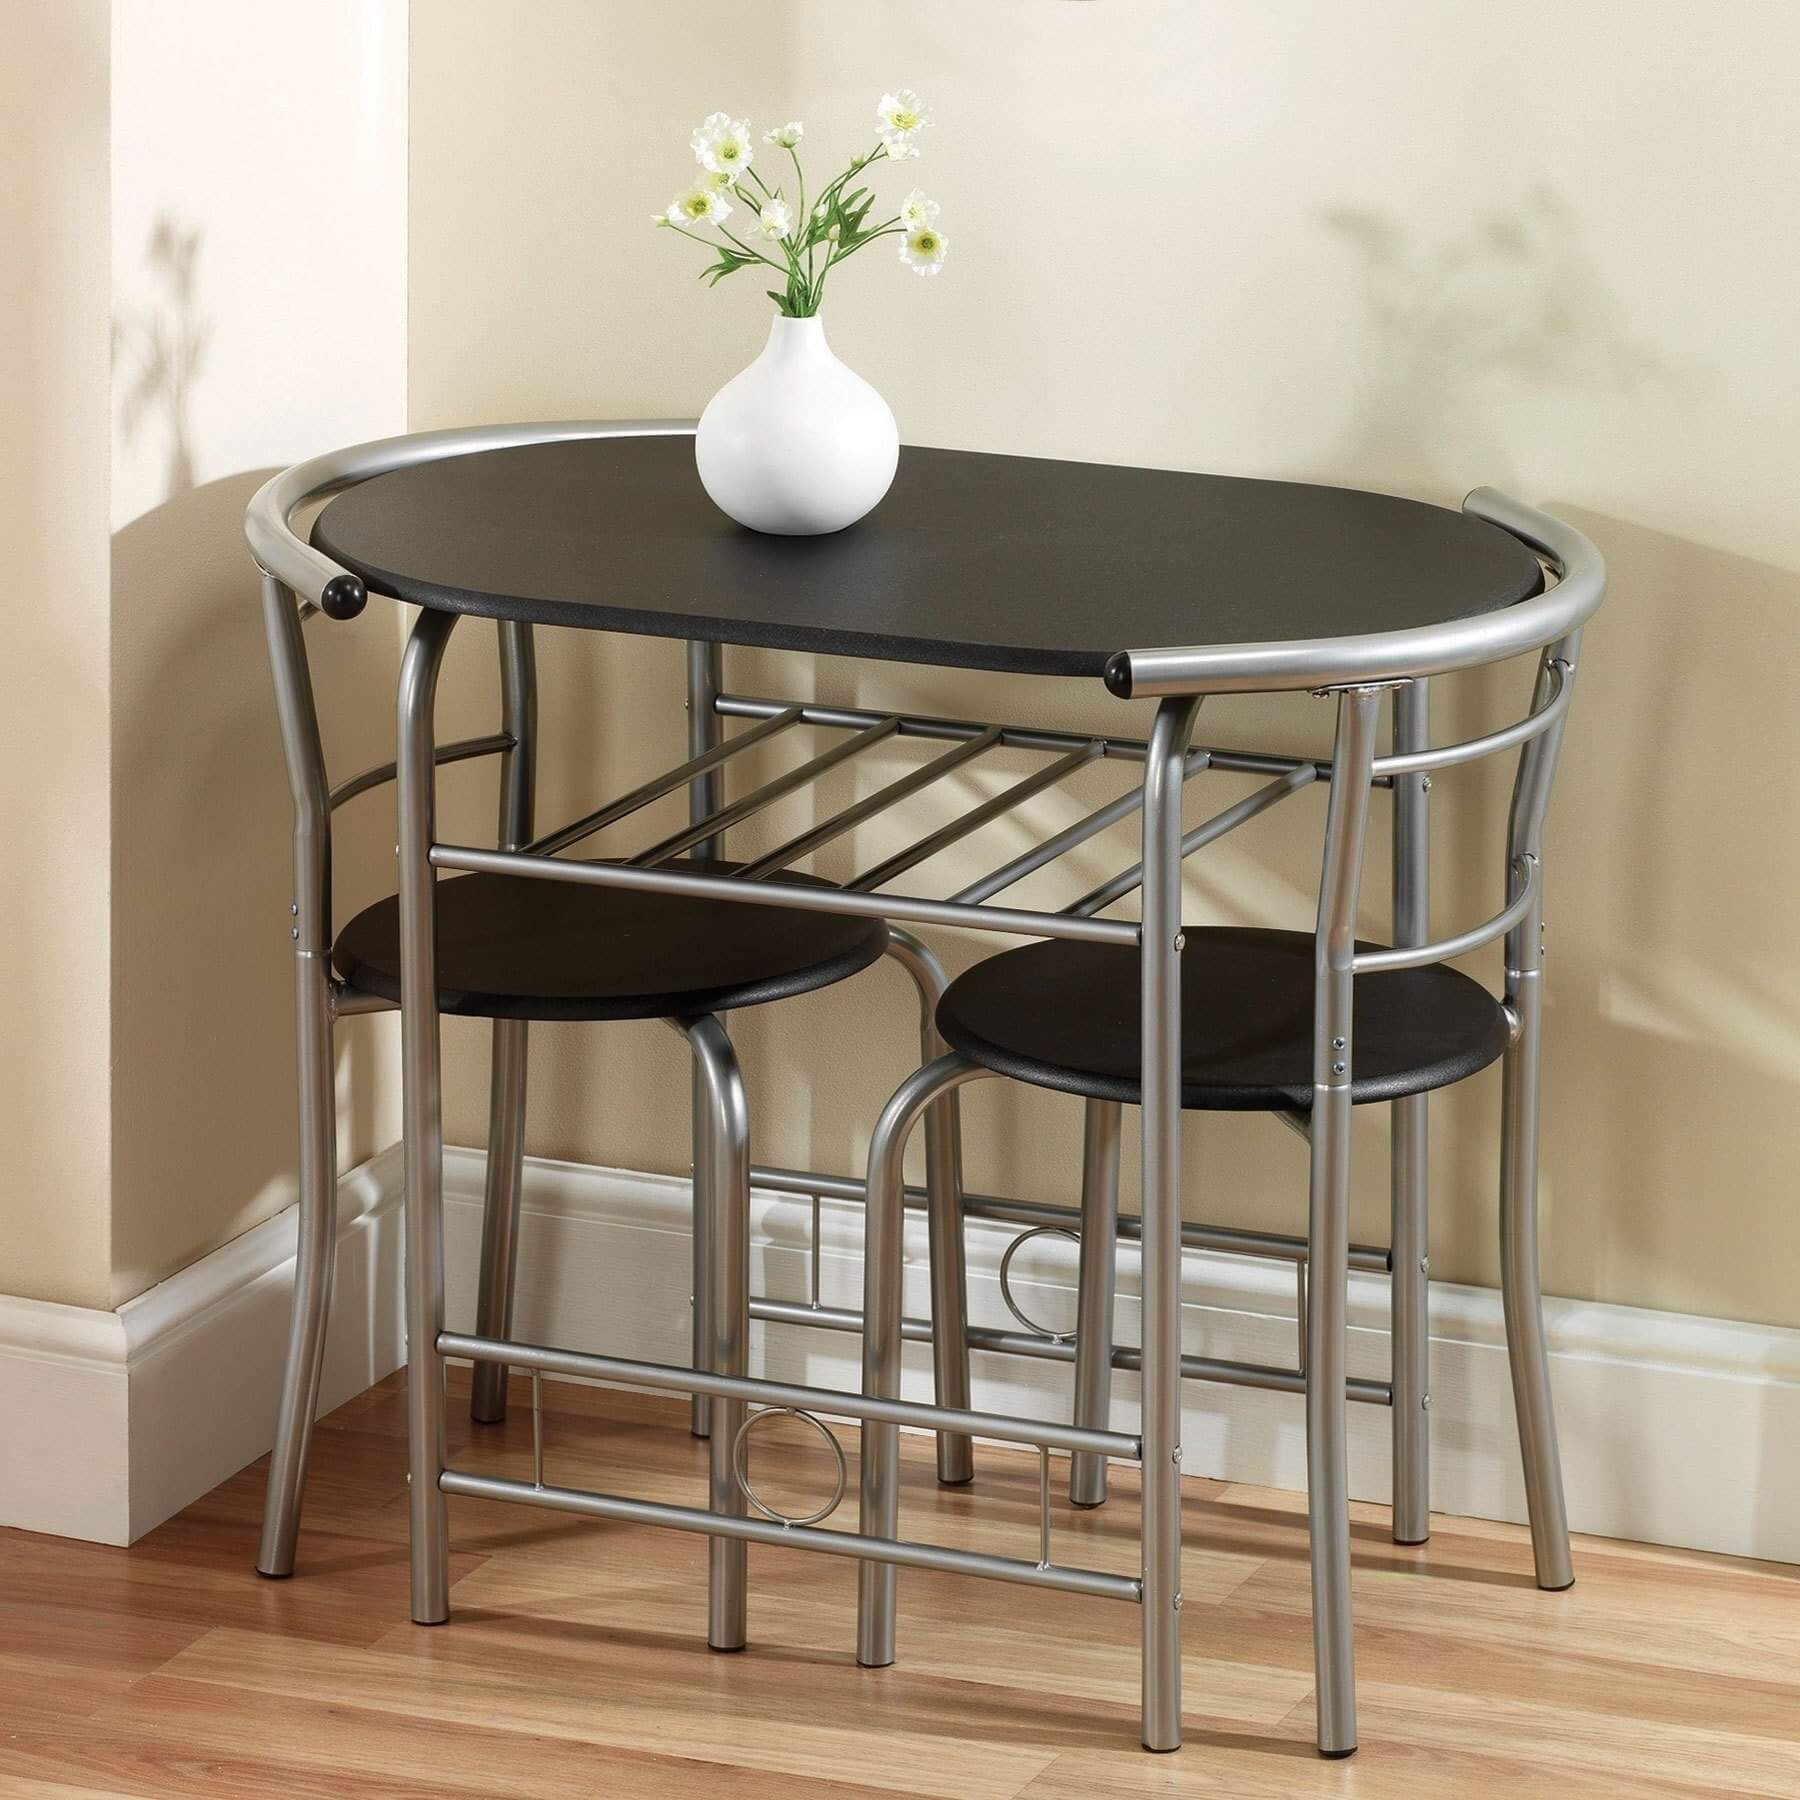 OVAL FRAME DINING TABLE SPACE SAVING